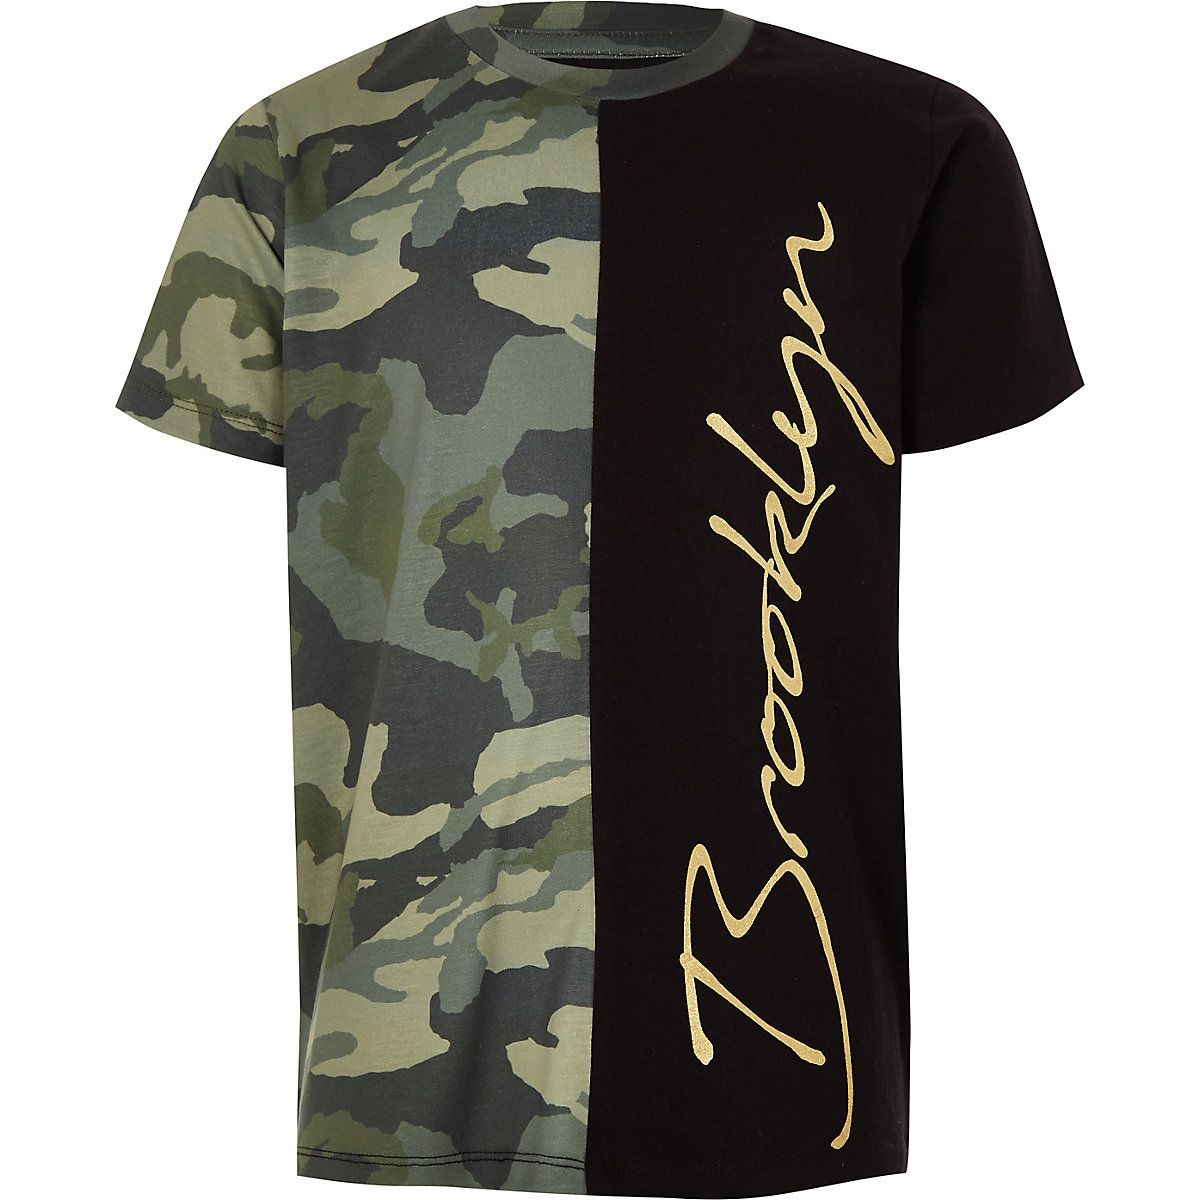 Boys khaki camo 'Brooklyn' T-shirt